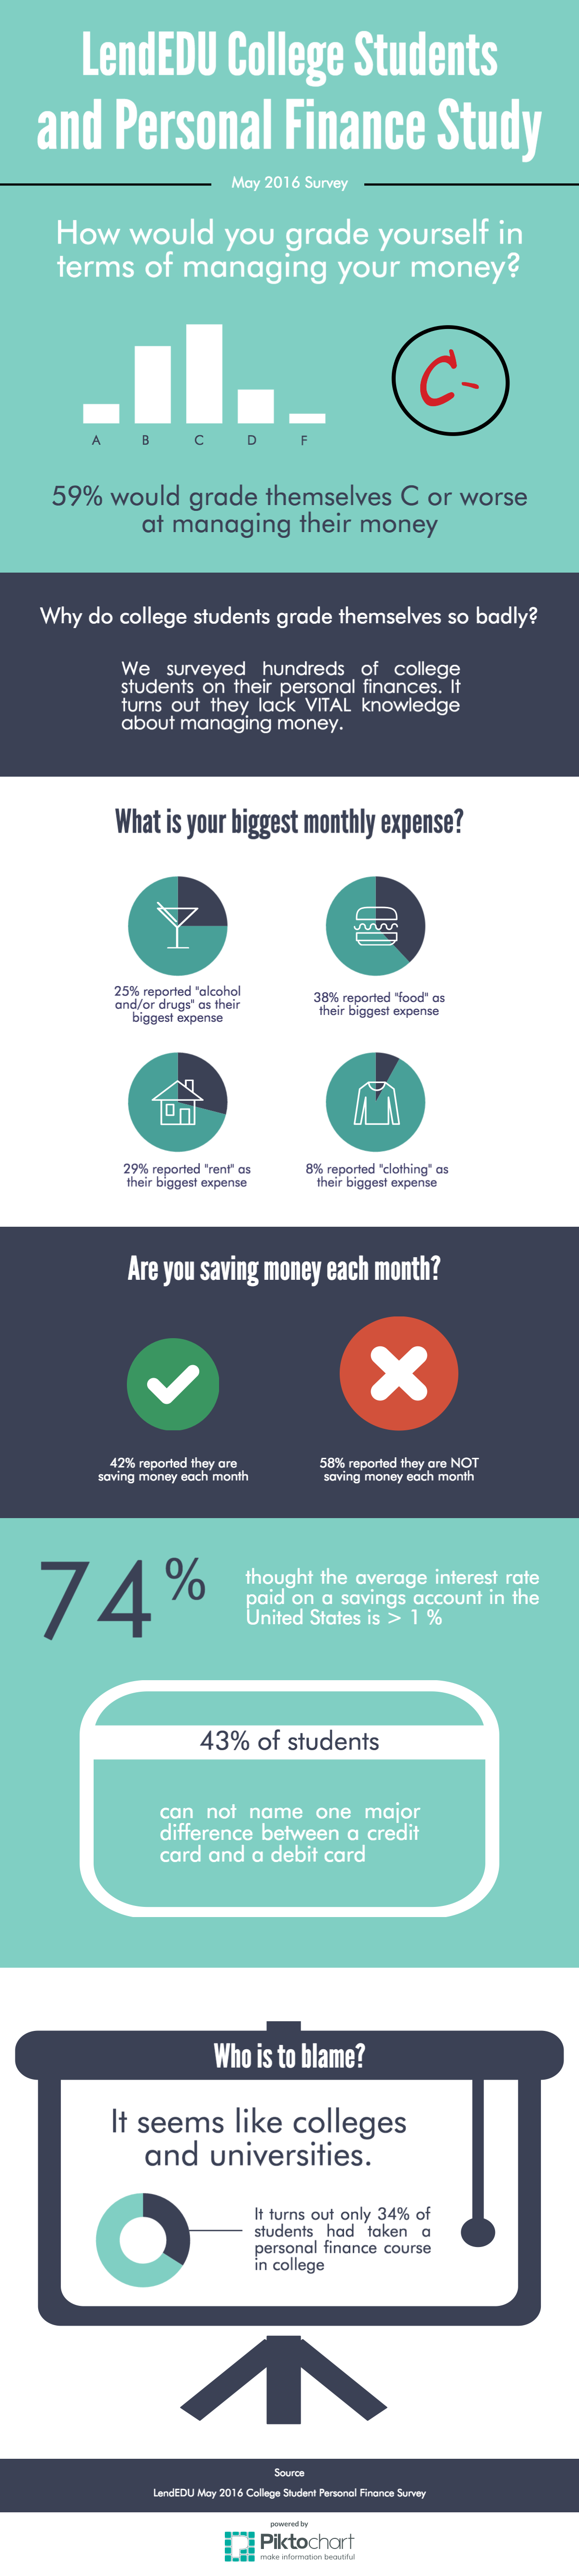 college students and personal finance study infographic